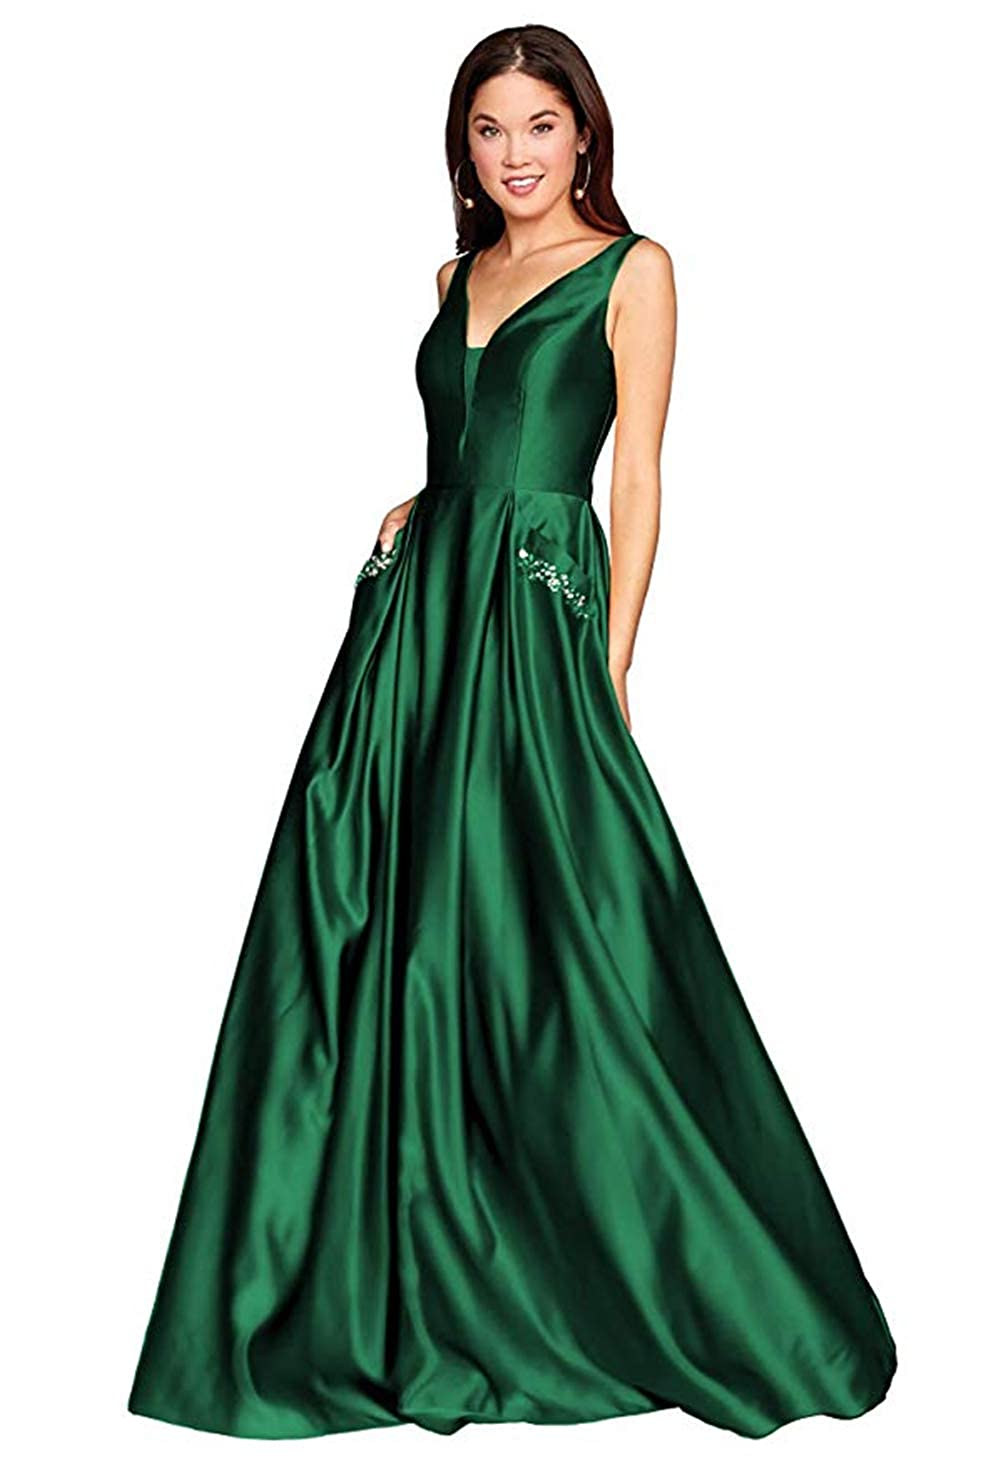 01emeraldgreen PROMNOVAS Women's V Neck Backless Beaded Satin Prom Dress Long Formal Evening Gown with Pockets